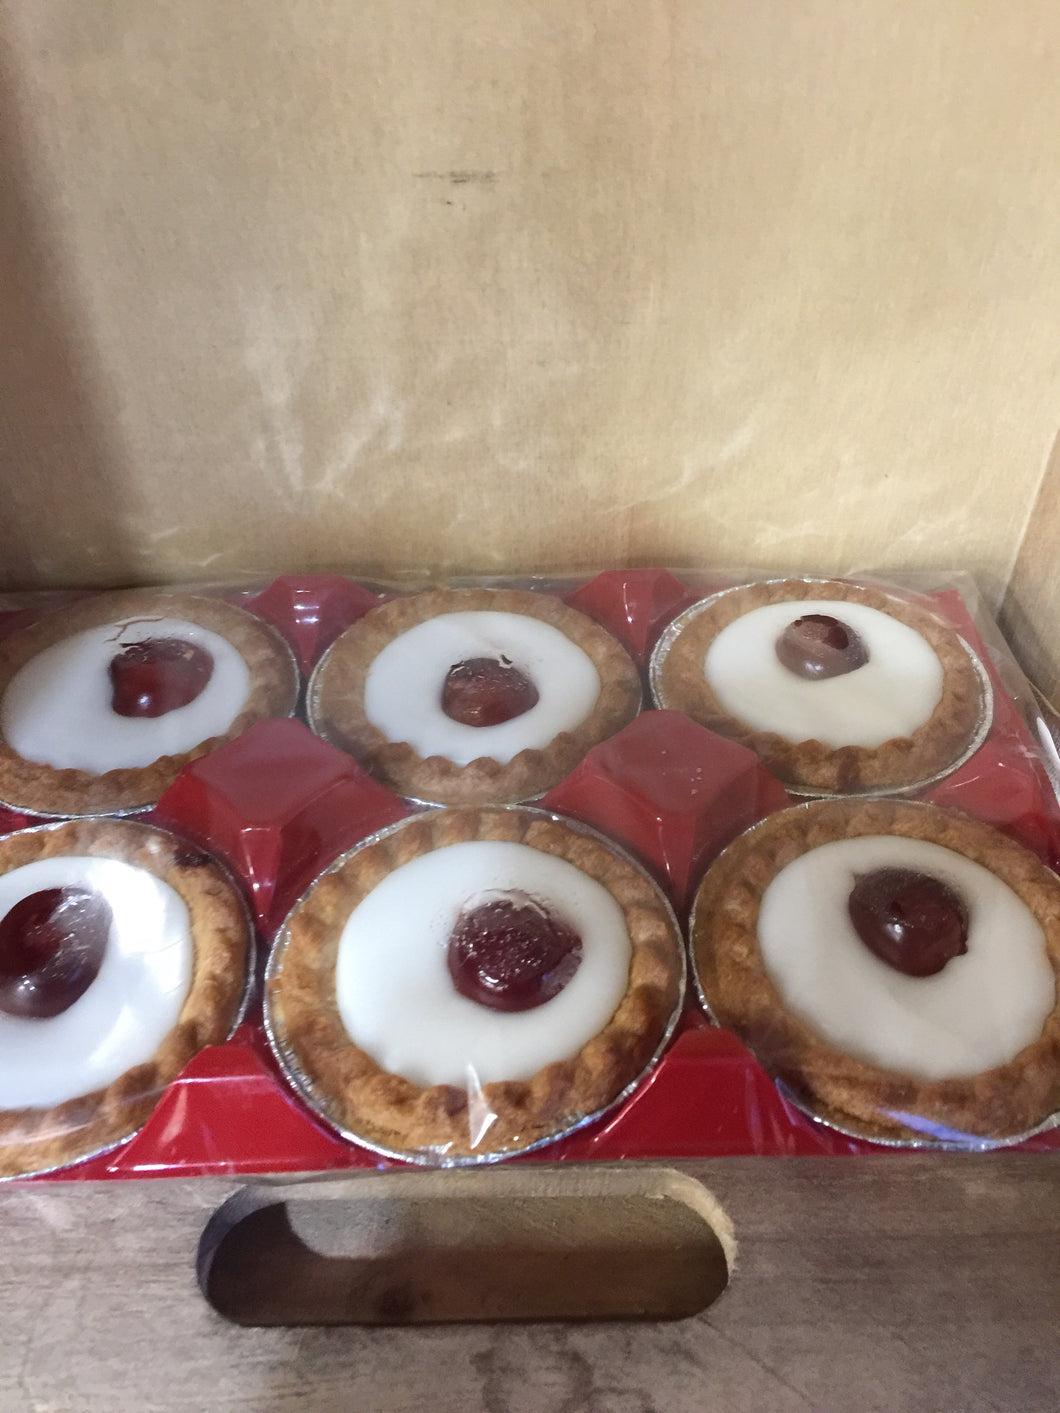 Low Price 6x Bakewell Tarts